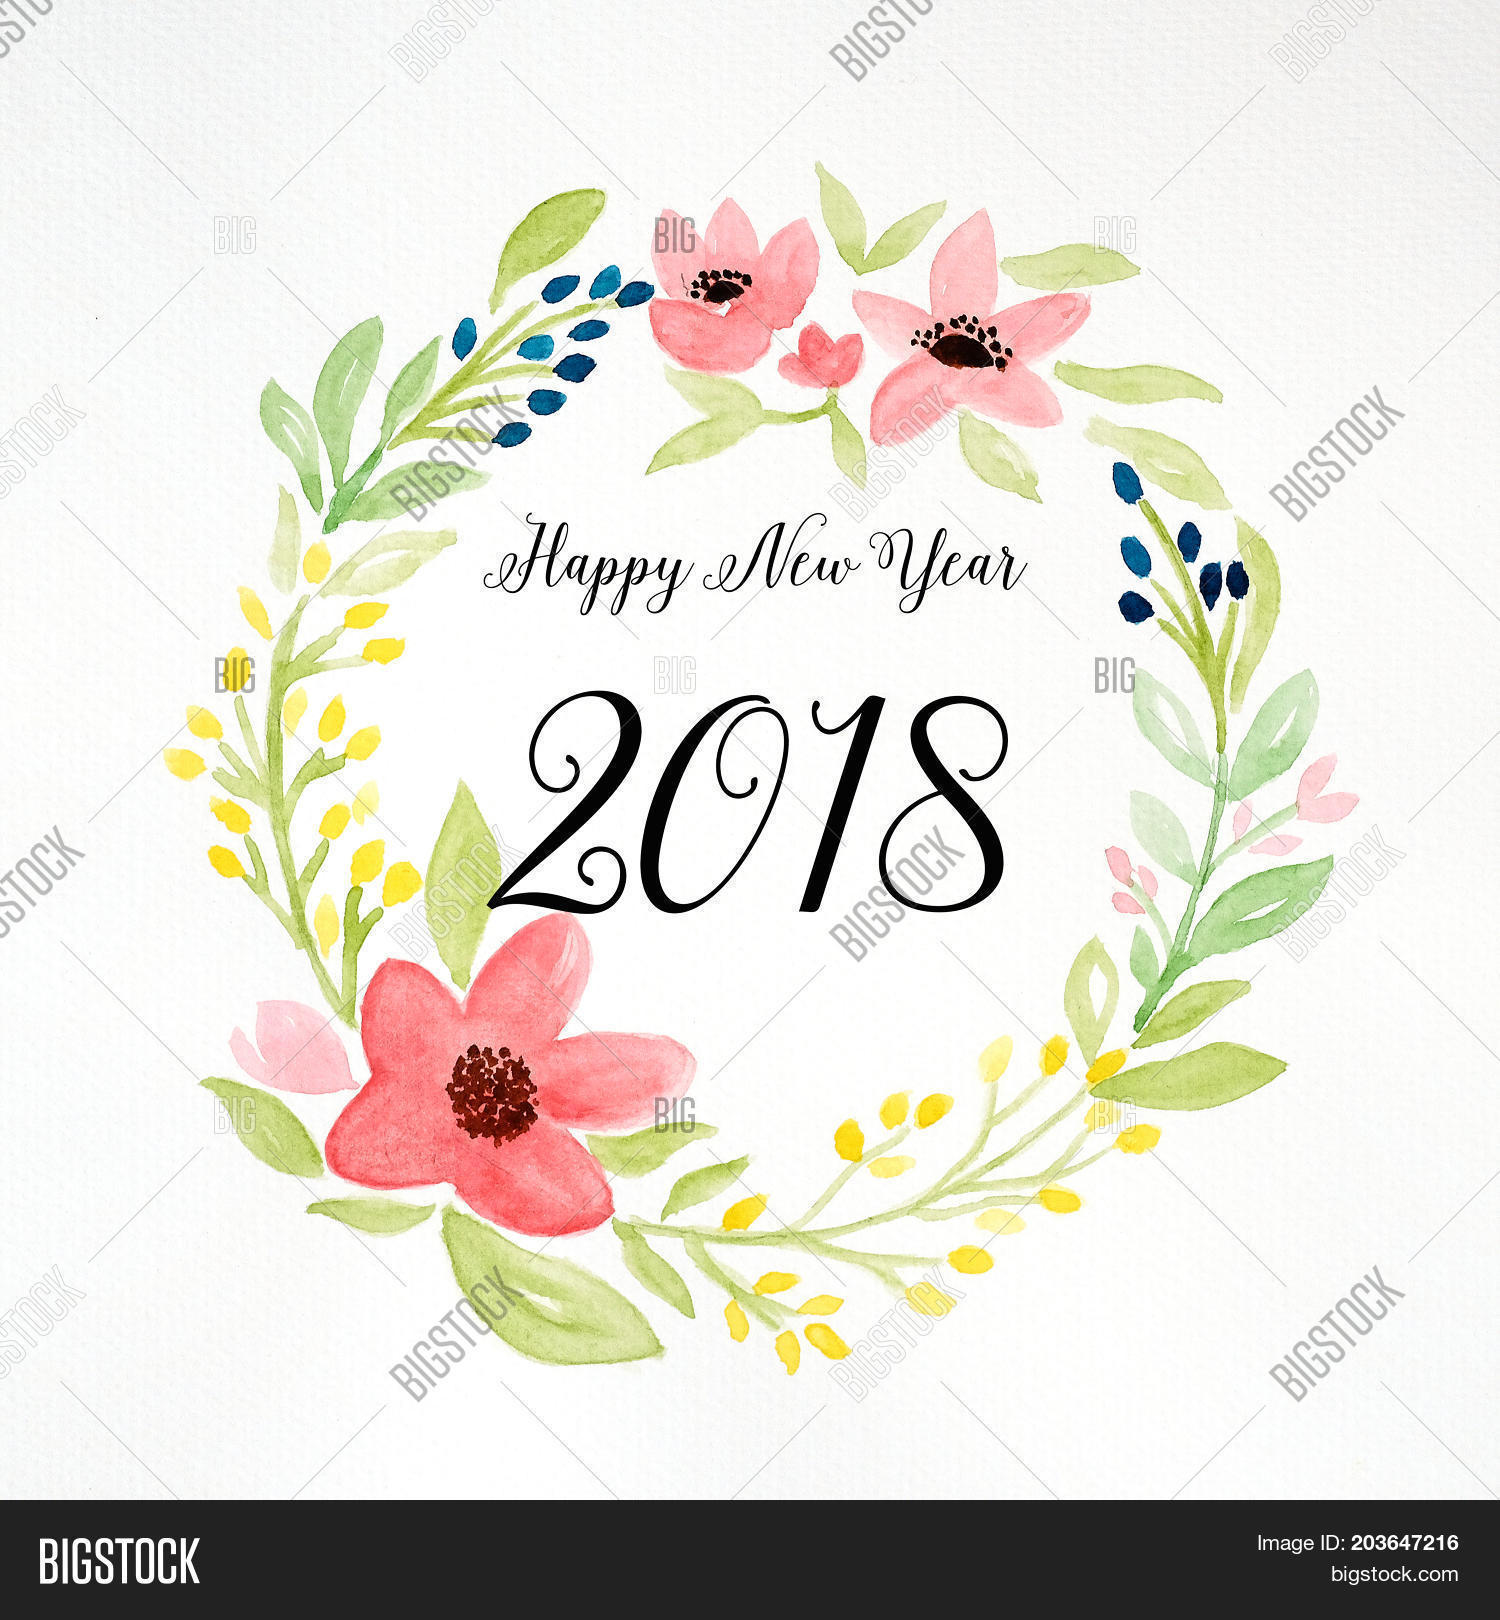 Happy New Year 2018 On Image & Photo (Free Trial) | Bigstock